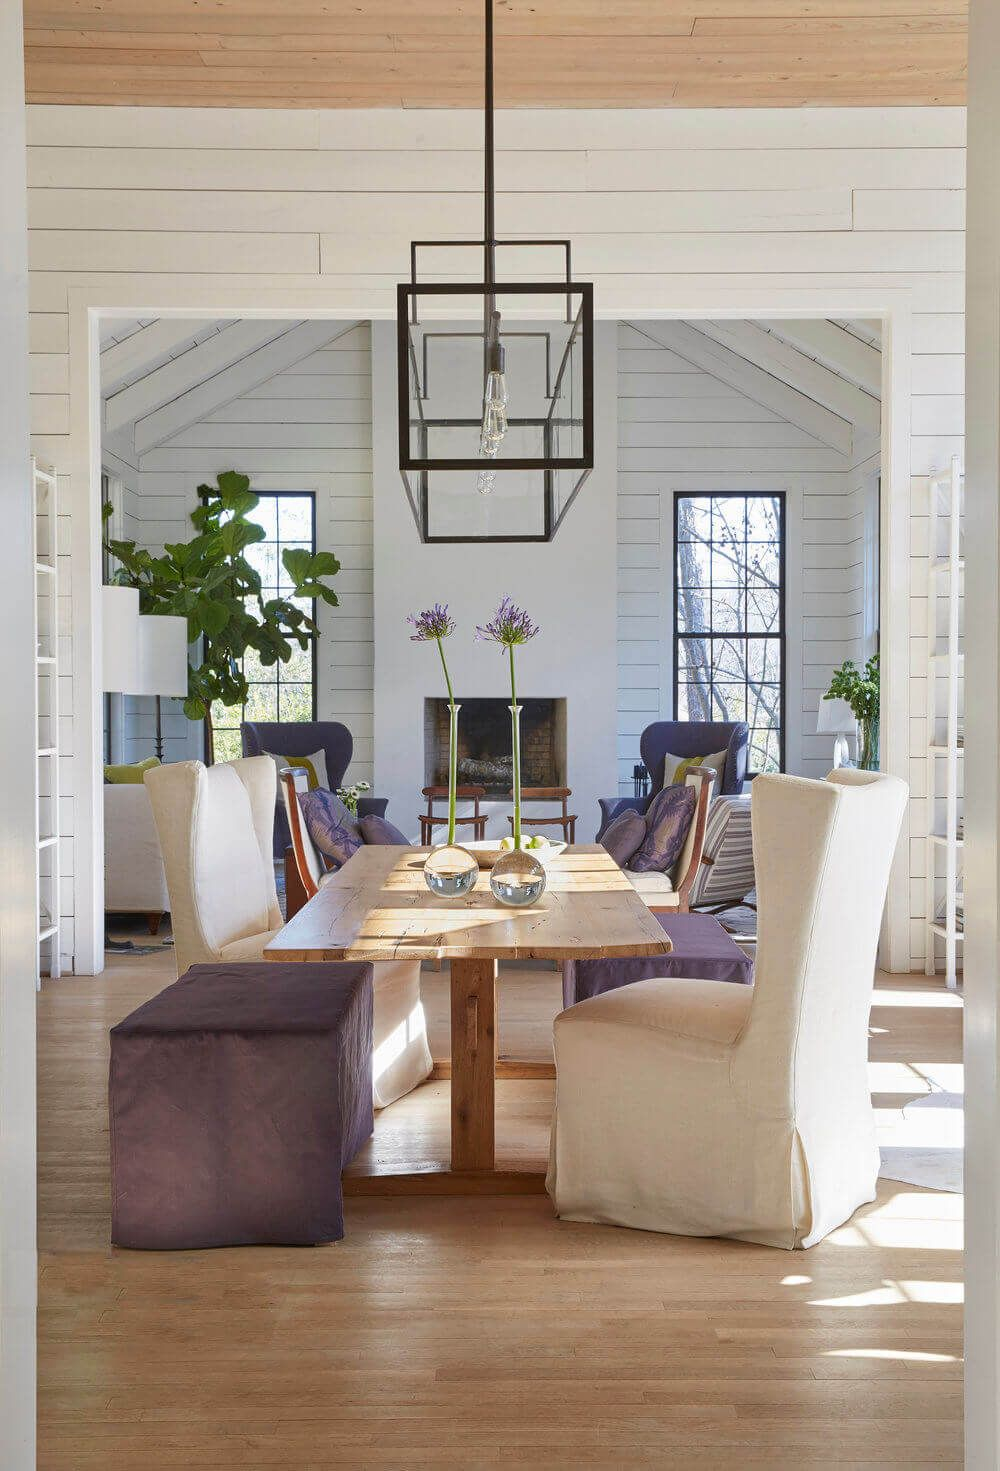 Shabby Chic Dining Room Design With White Panel Walls And Unique Shabby Chic Dining Room Review